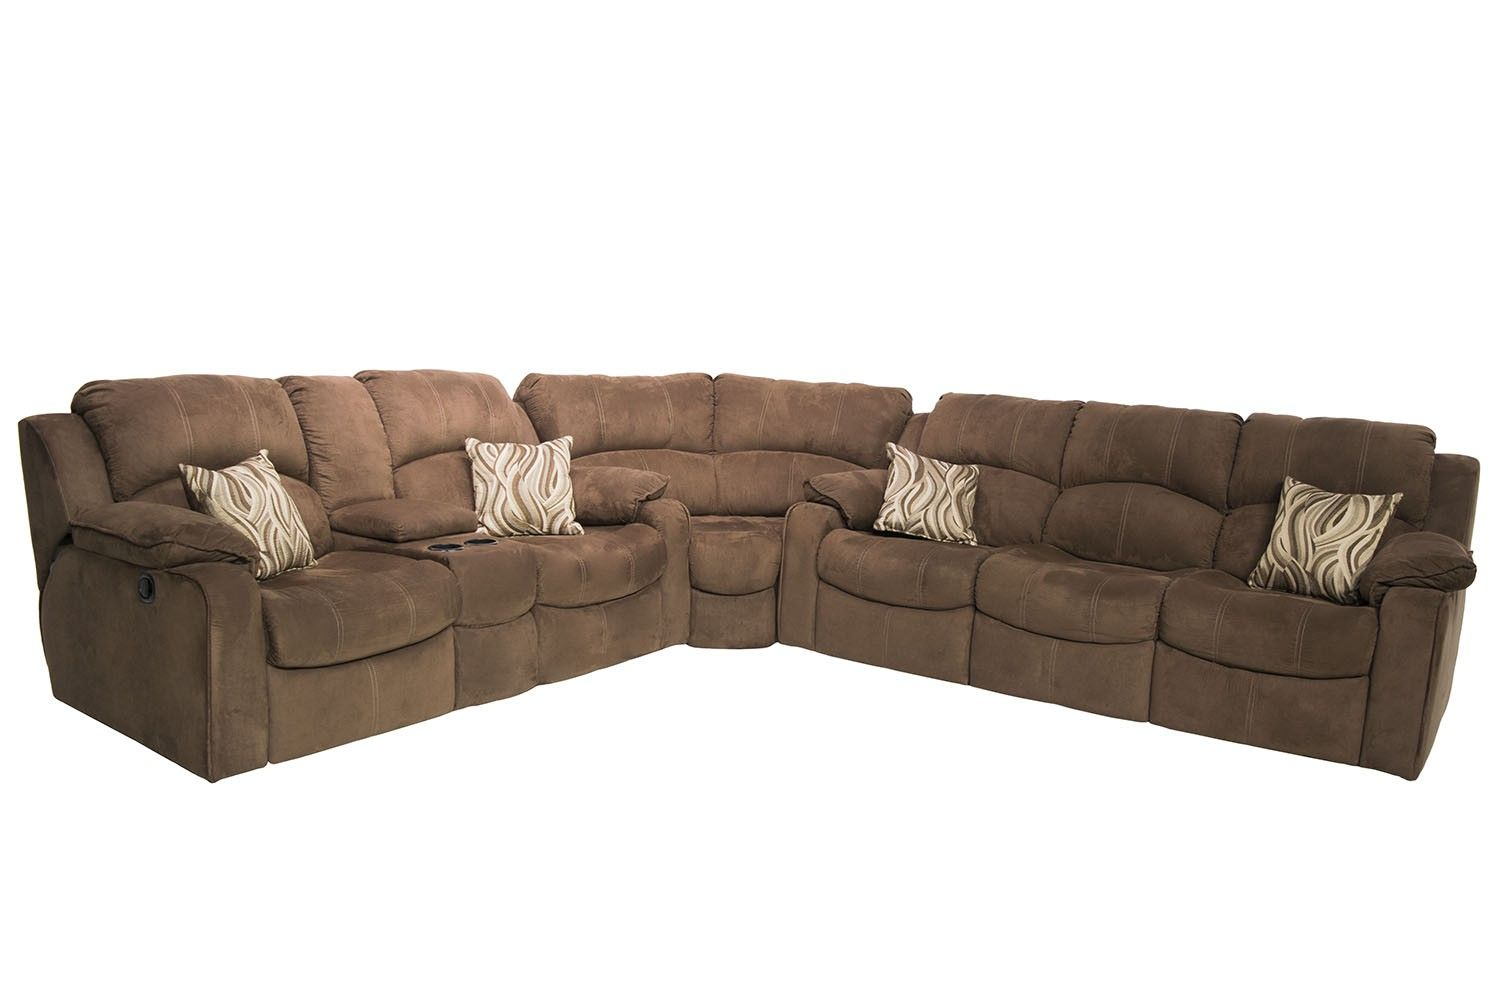 Tornado Sectional Living Room in Chocolate - Living Room | Mor ...